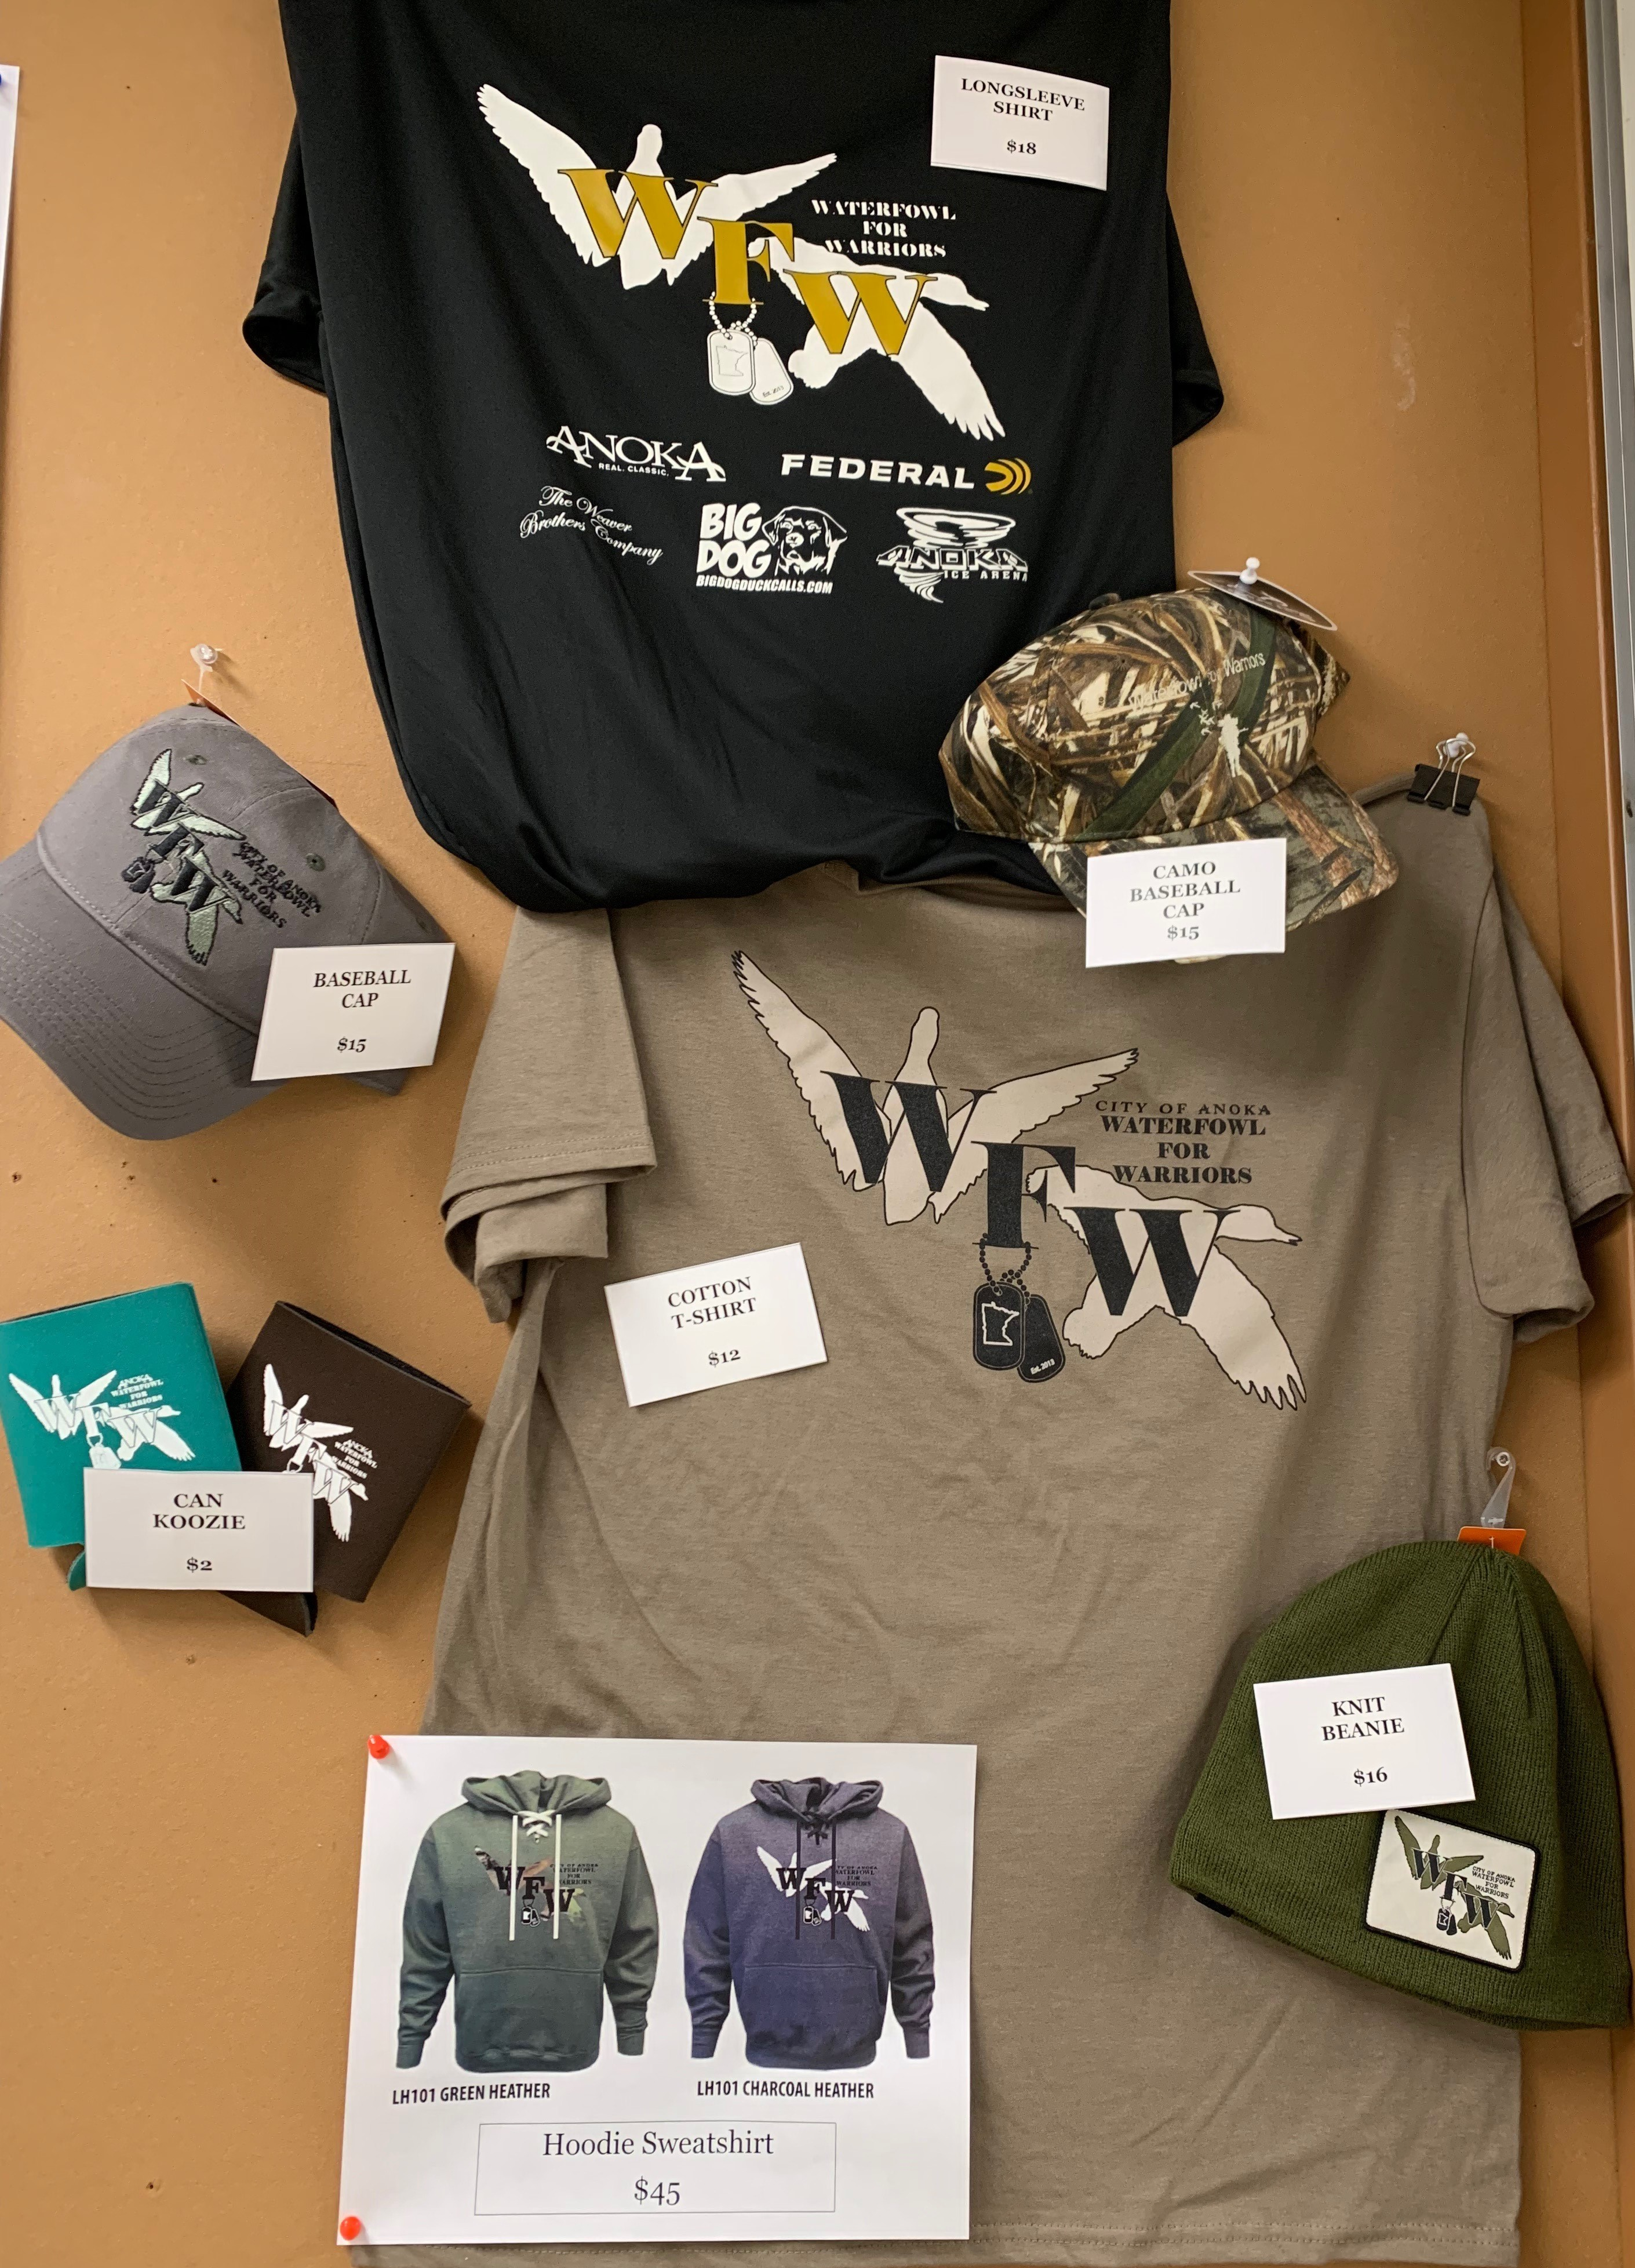 Various Waterfowl for Warriors Merchandise Including Hats, Shirts, and Hoodies